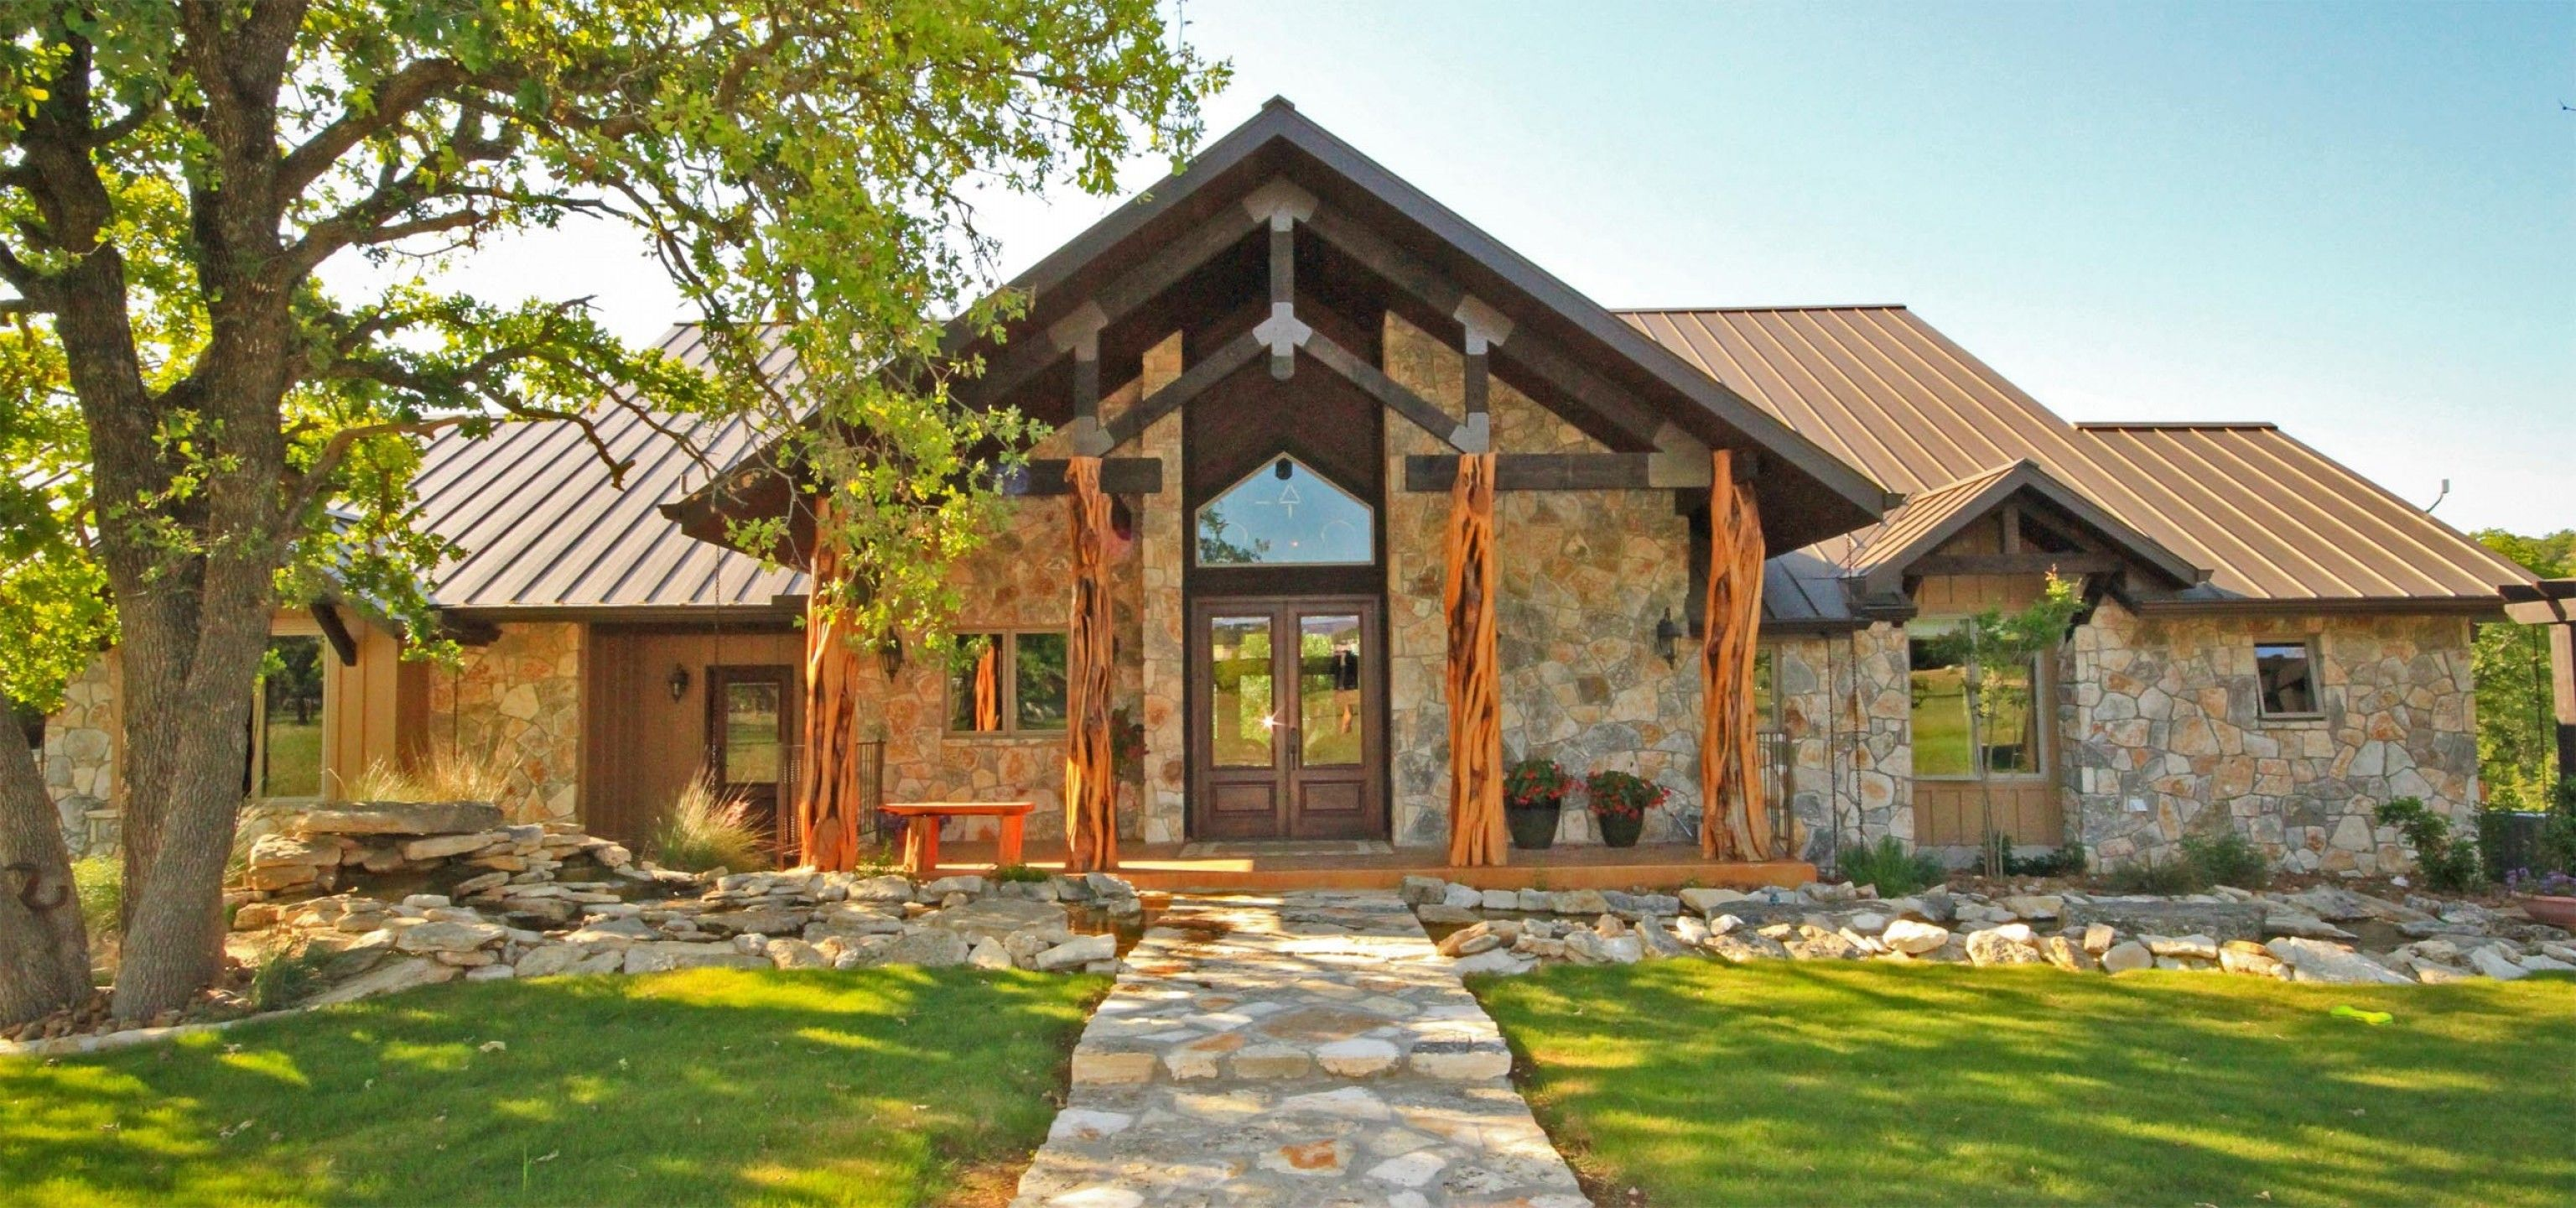 Country Ranch House Designs Ideas About Hill Country Homes On Pinterest House Texas Stone Ranch Style Ranch House Designs Texas House Plans Hill Country Homes